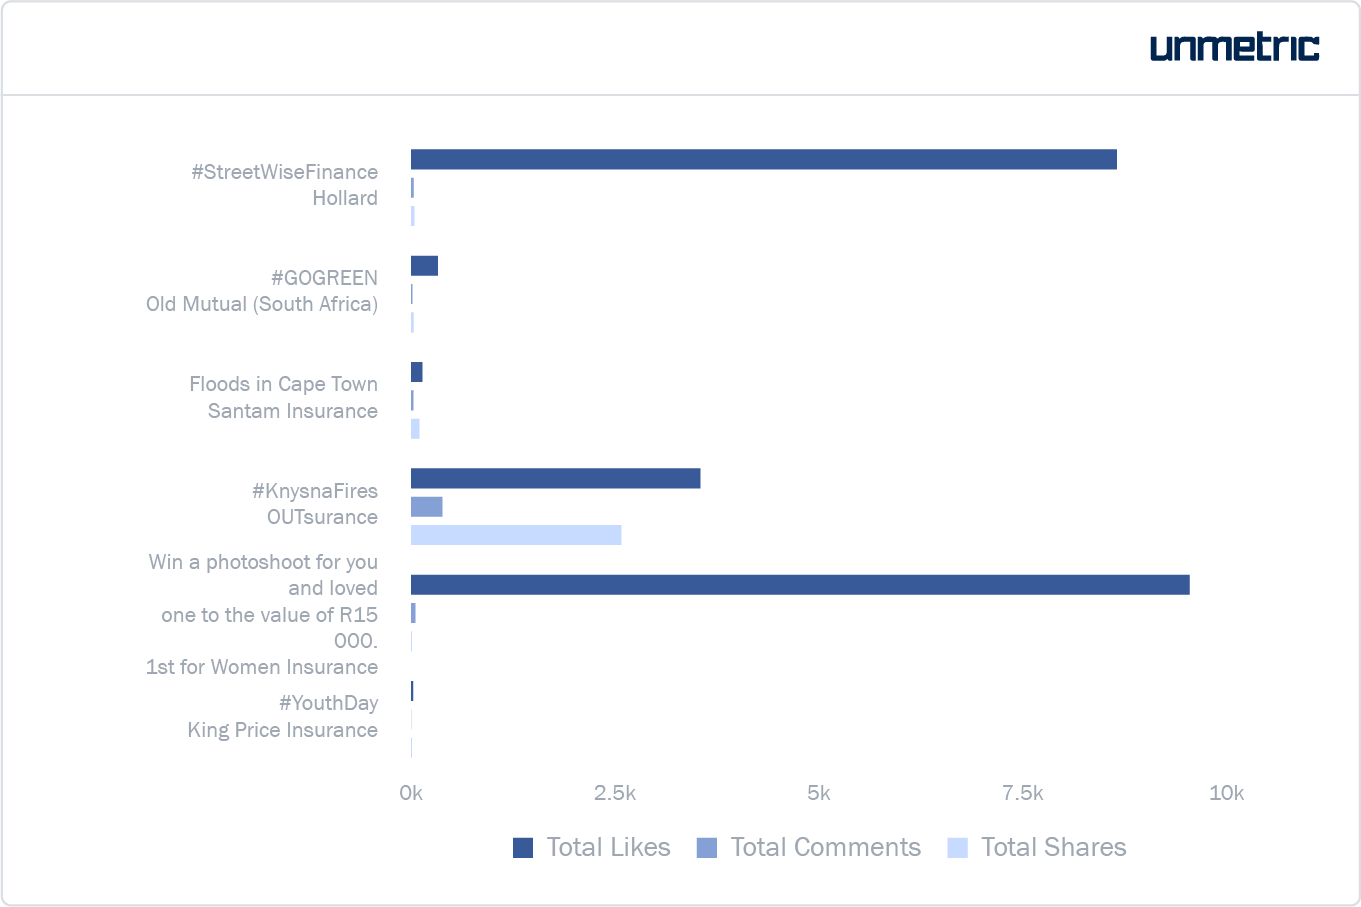 Likes, comments and shares per campaign